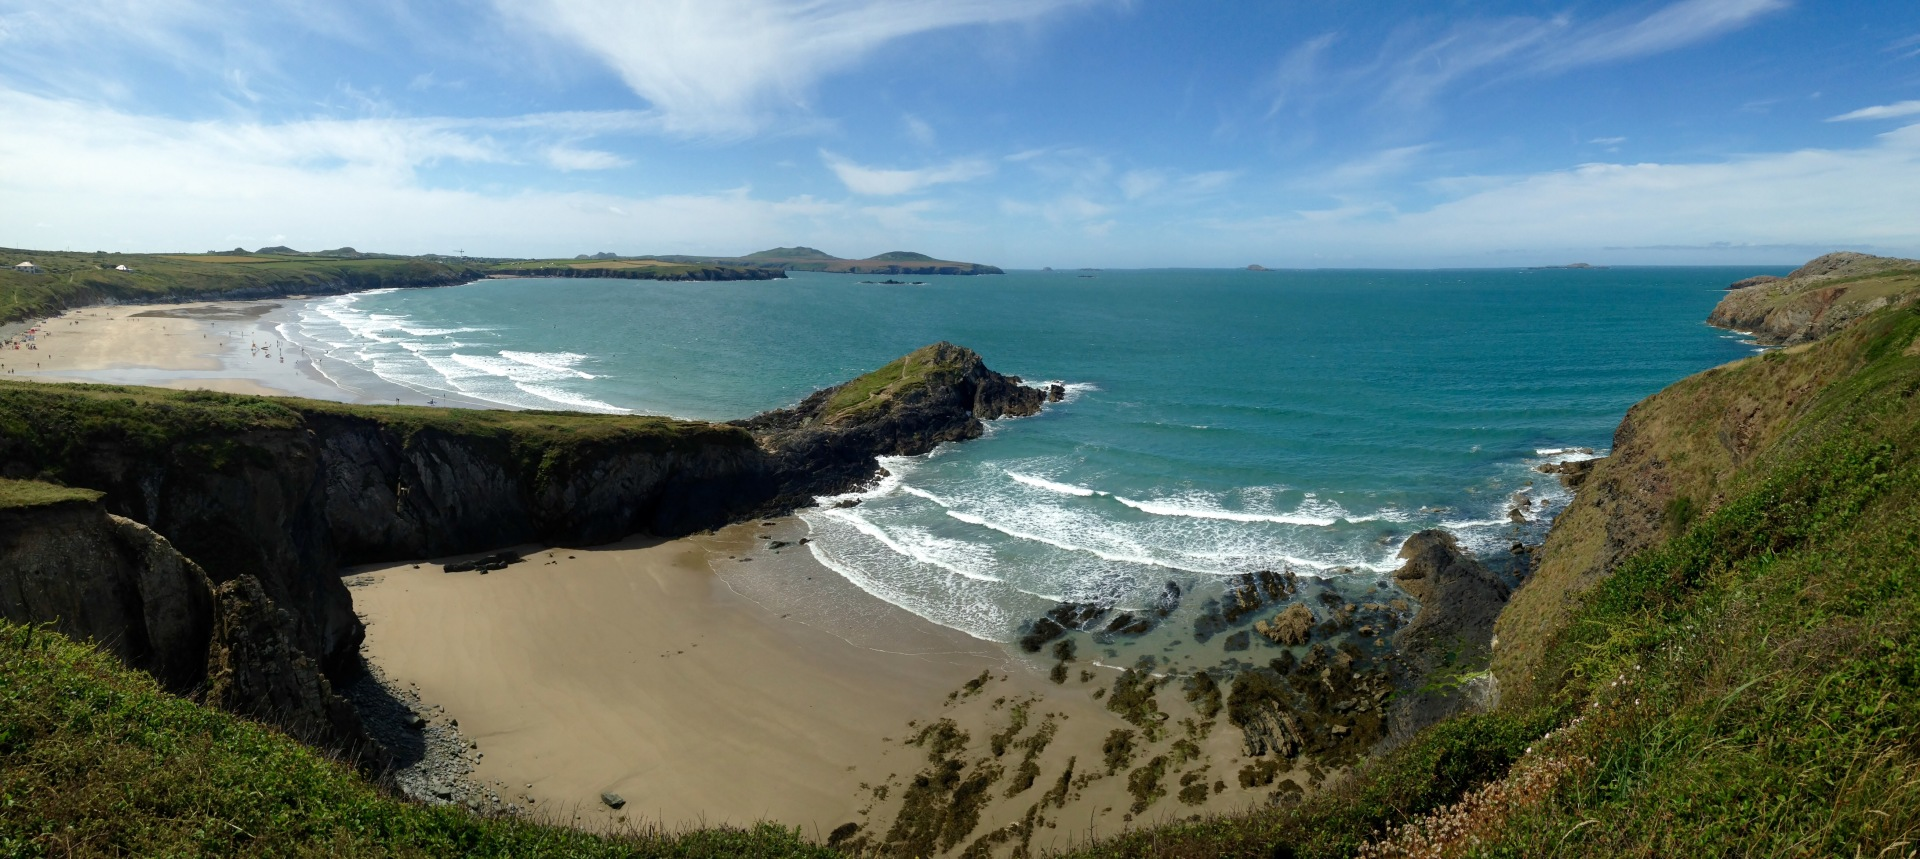 Whitesands Bay, Wales,